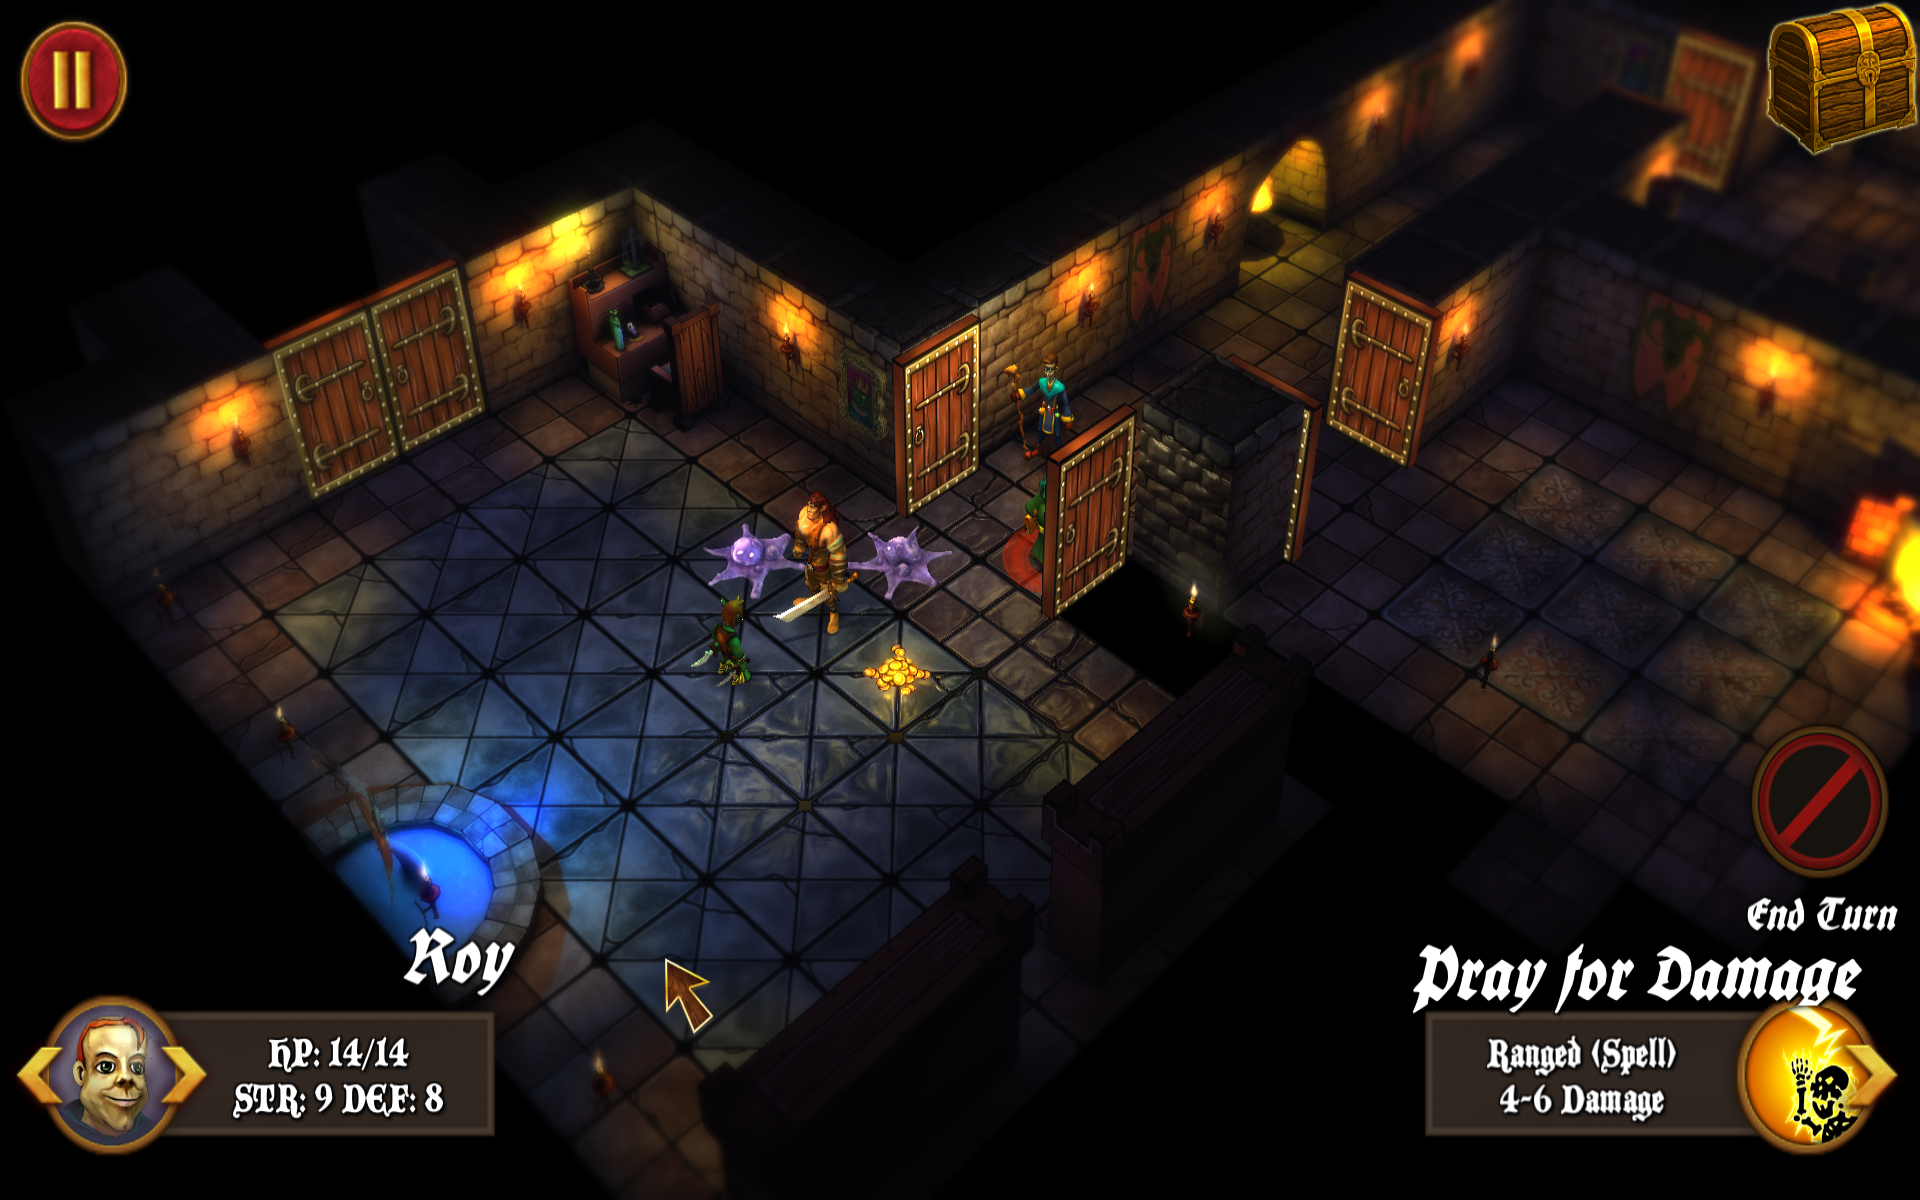 Dungeon Crawlers HD v. 2.1.0 (01.06.2015) [En] [OS X Native game]